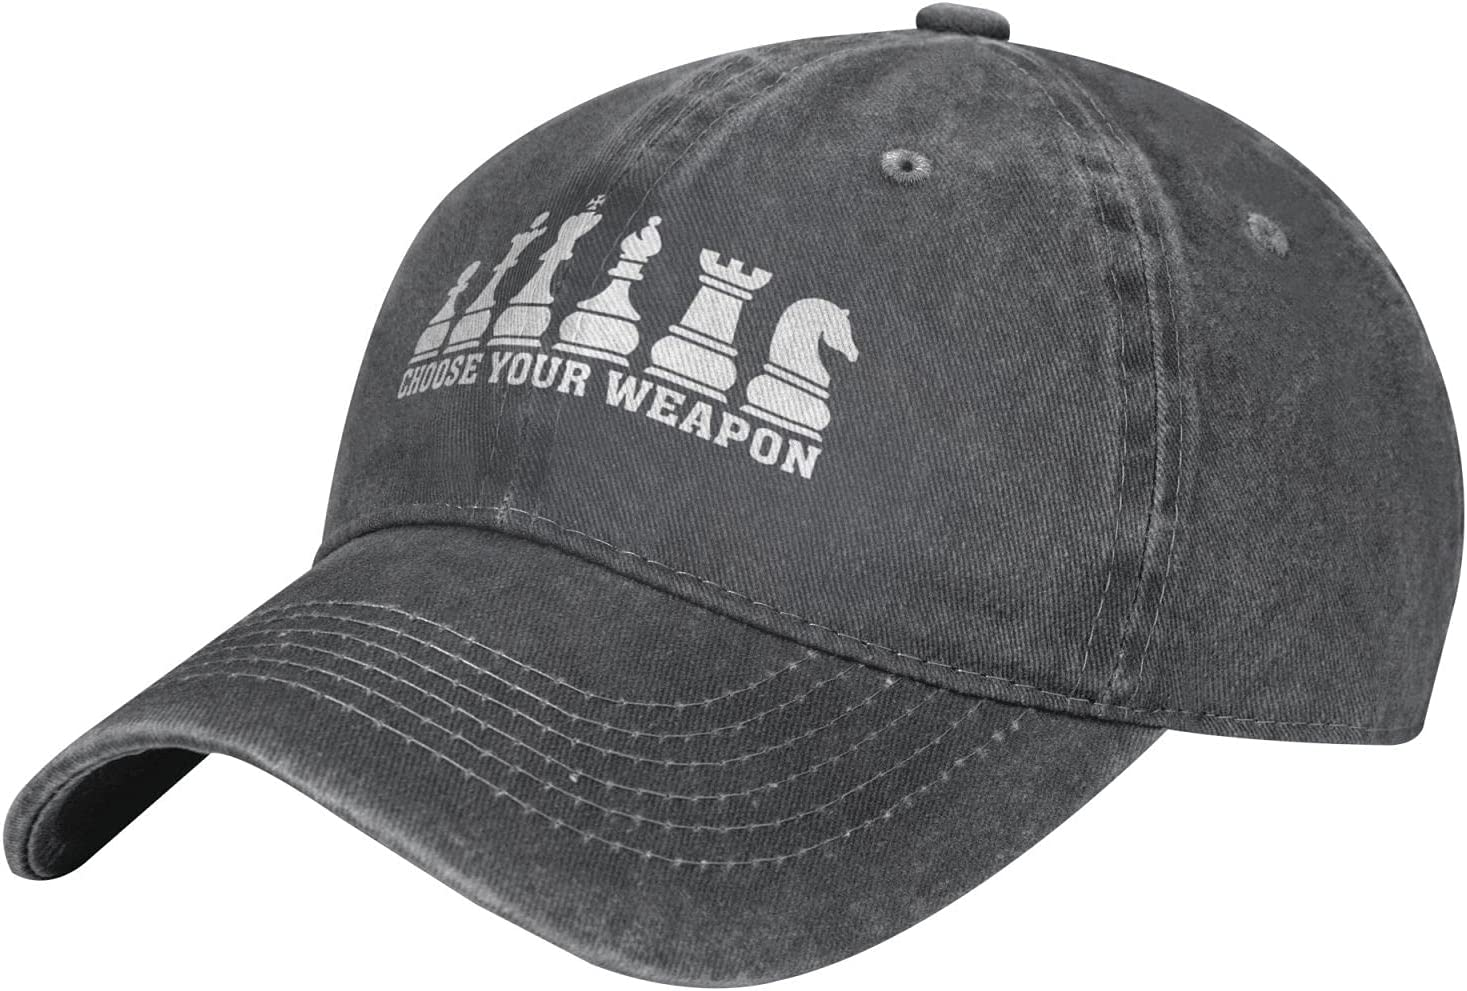 Pcaocmro Choose Your Weapon Cowboy Hat Unisex Adjustable Hat Circumference Size Pure Cotton Denim Wash Water Outdoor